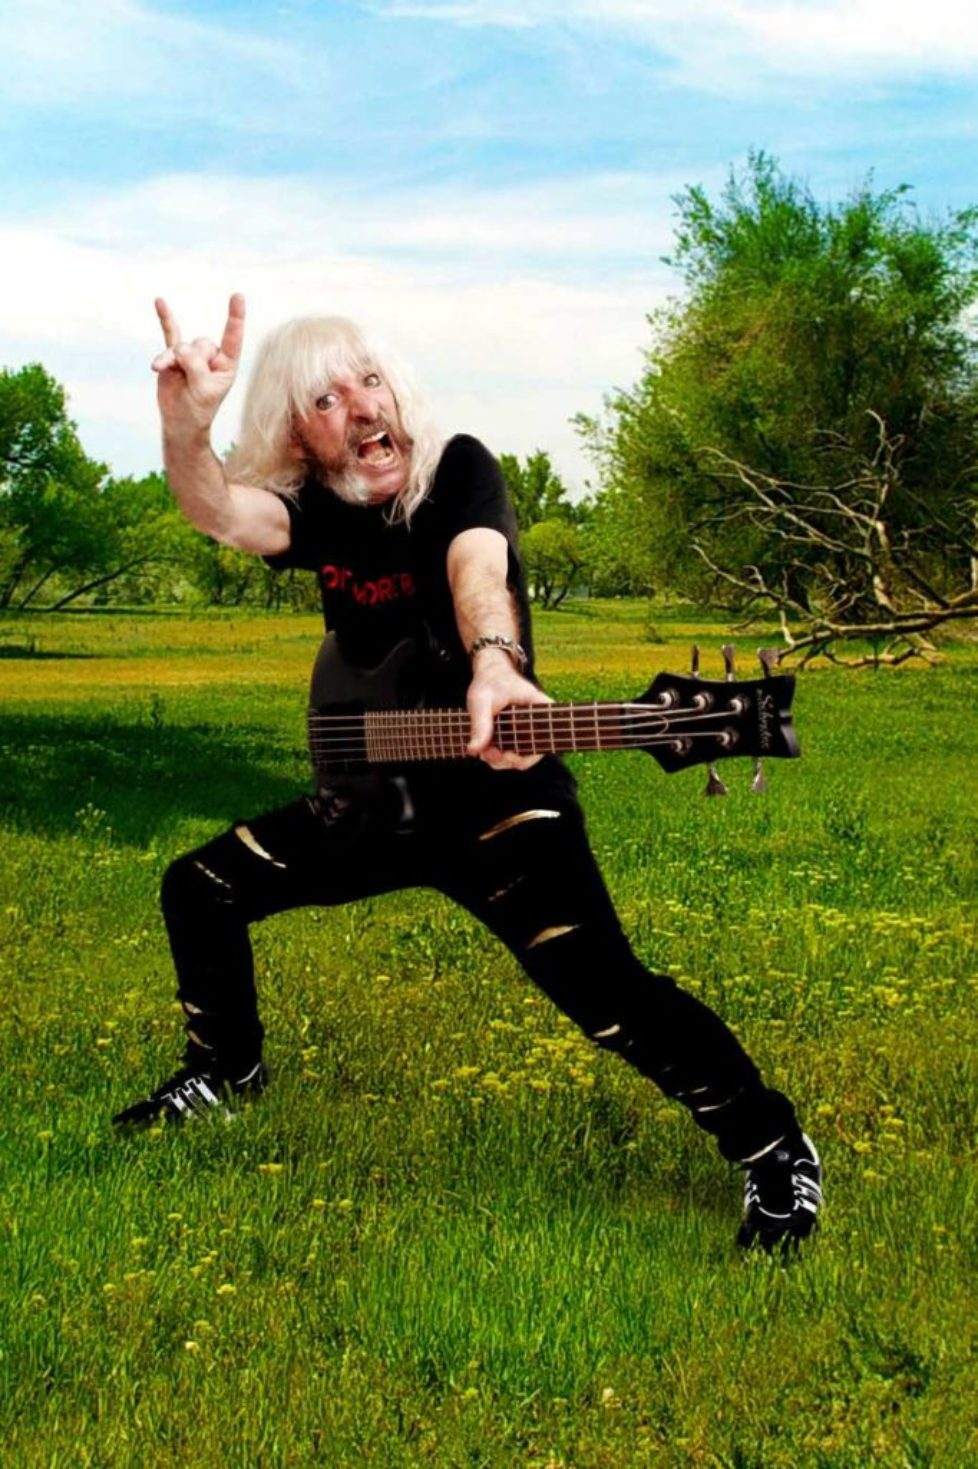 Derek-Smalls-Press-2-Photocredit-Rob-Shanahan-hiRes-px900